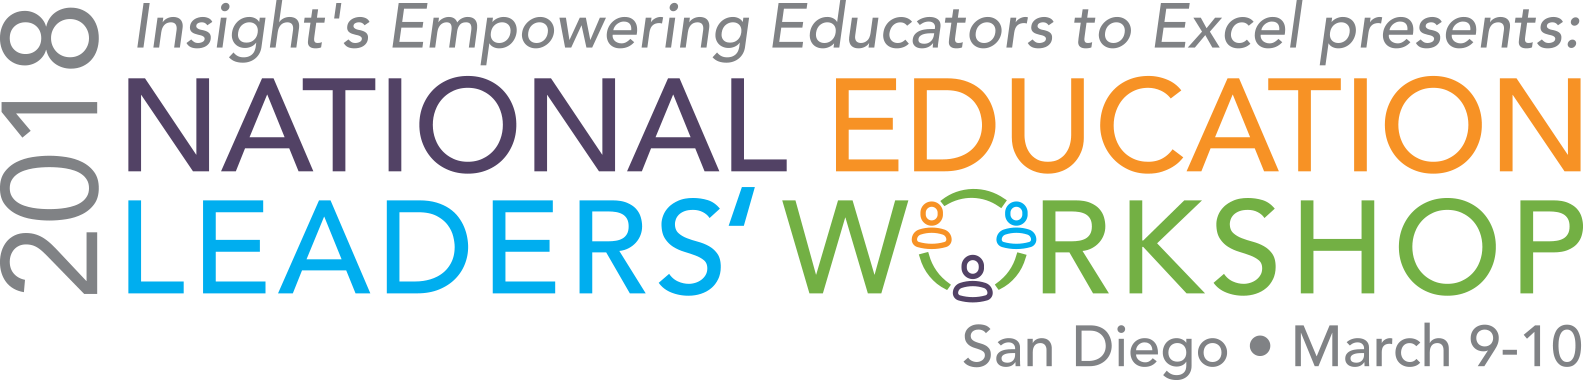 National Education Leaders' Workshop - San Diego - March 2018